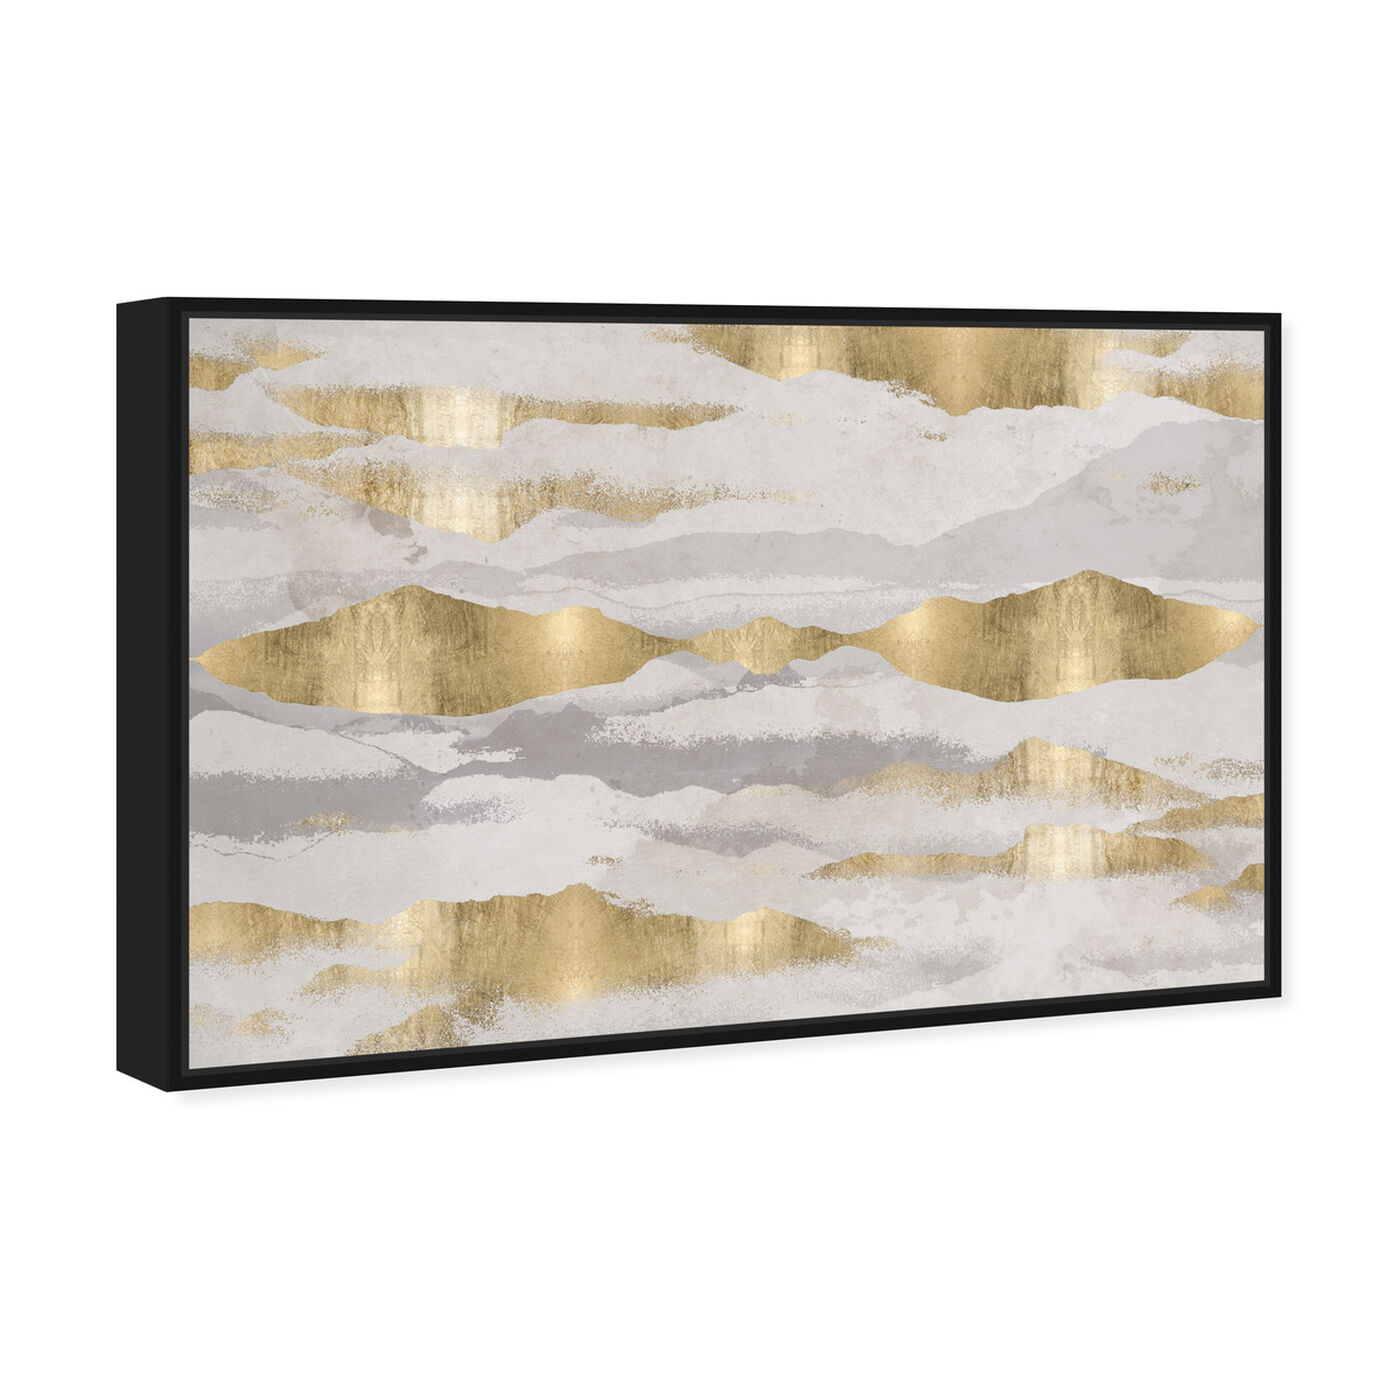 Angled view of Mountains Of Life featuring abstract and textures art.